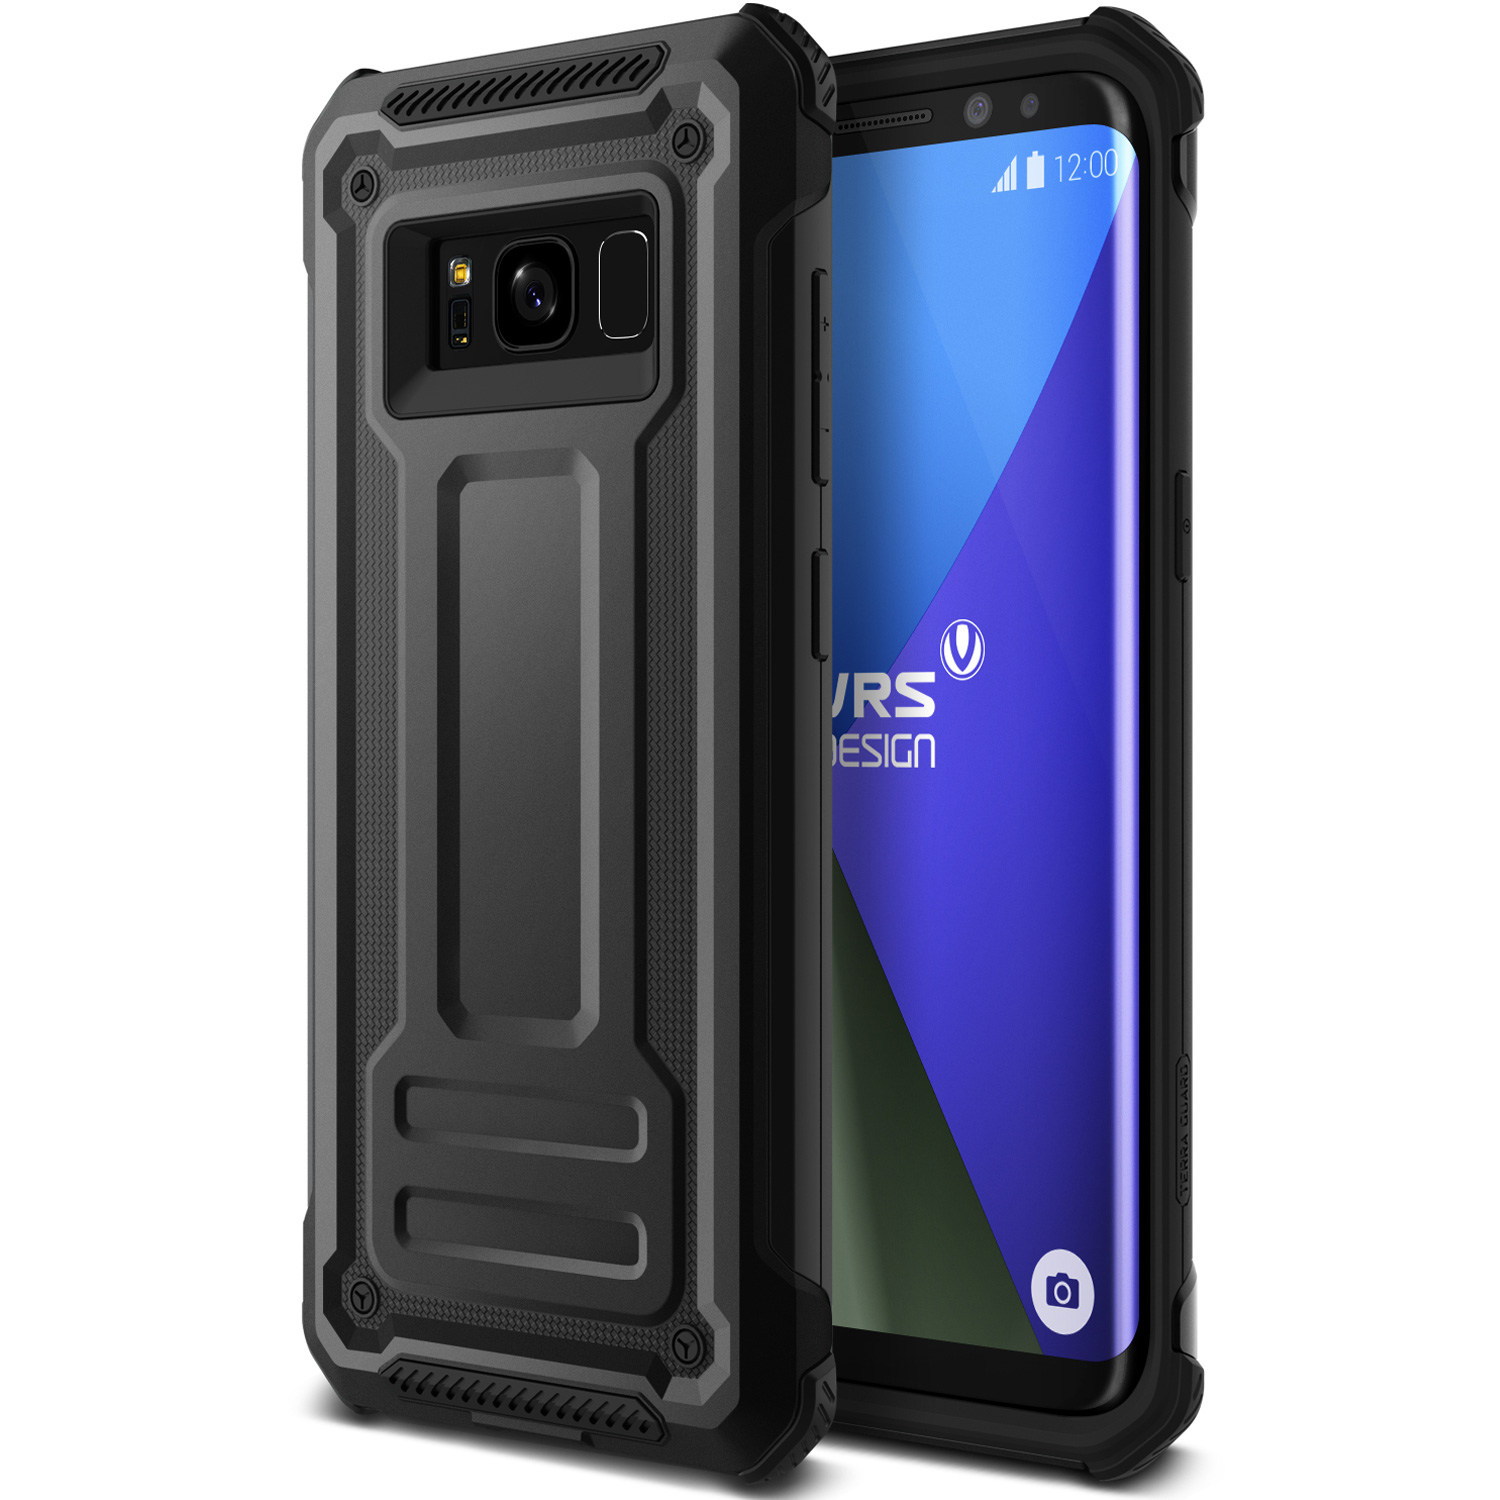 Samsung Galaxy S8 Plus Case Cover | Shockproof Slim Protection | VRS Design Terra Guard for Samsung Galaxy S8 Plus